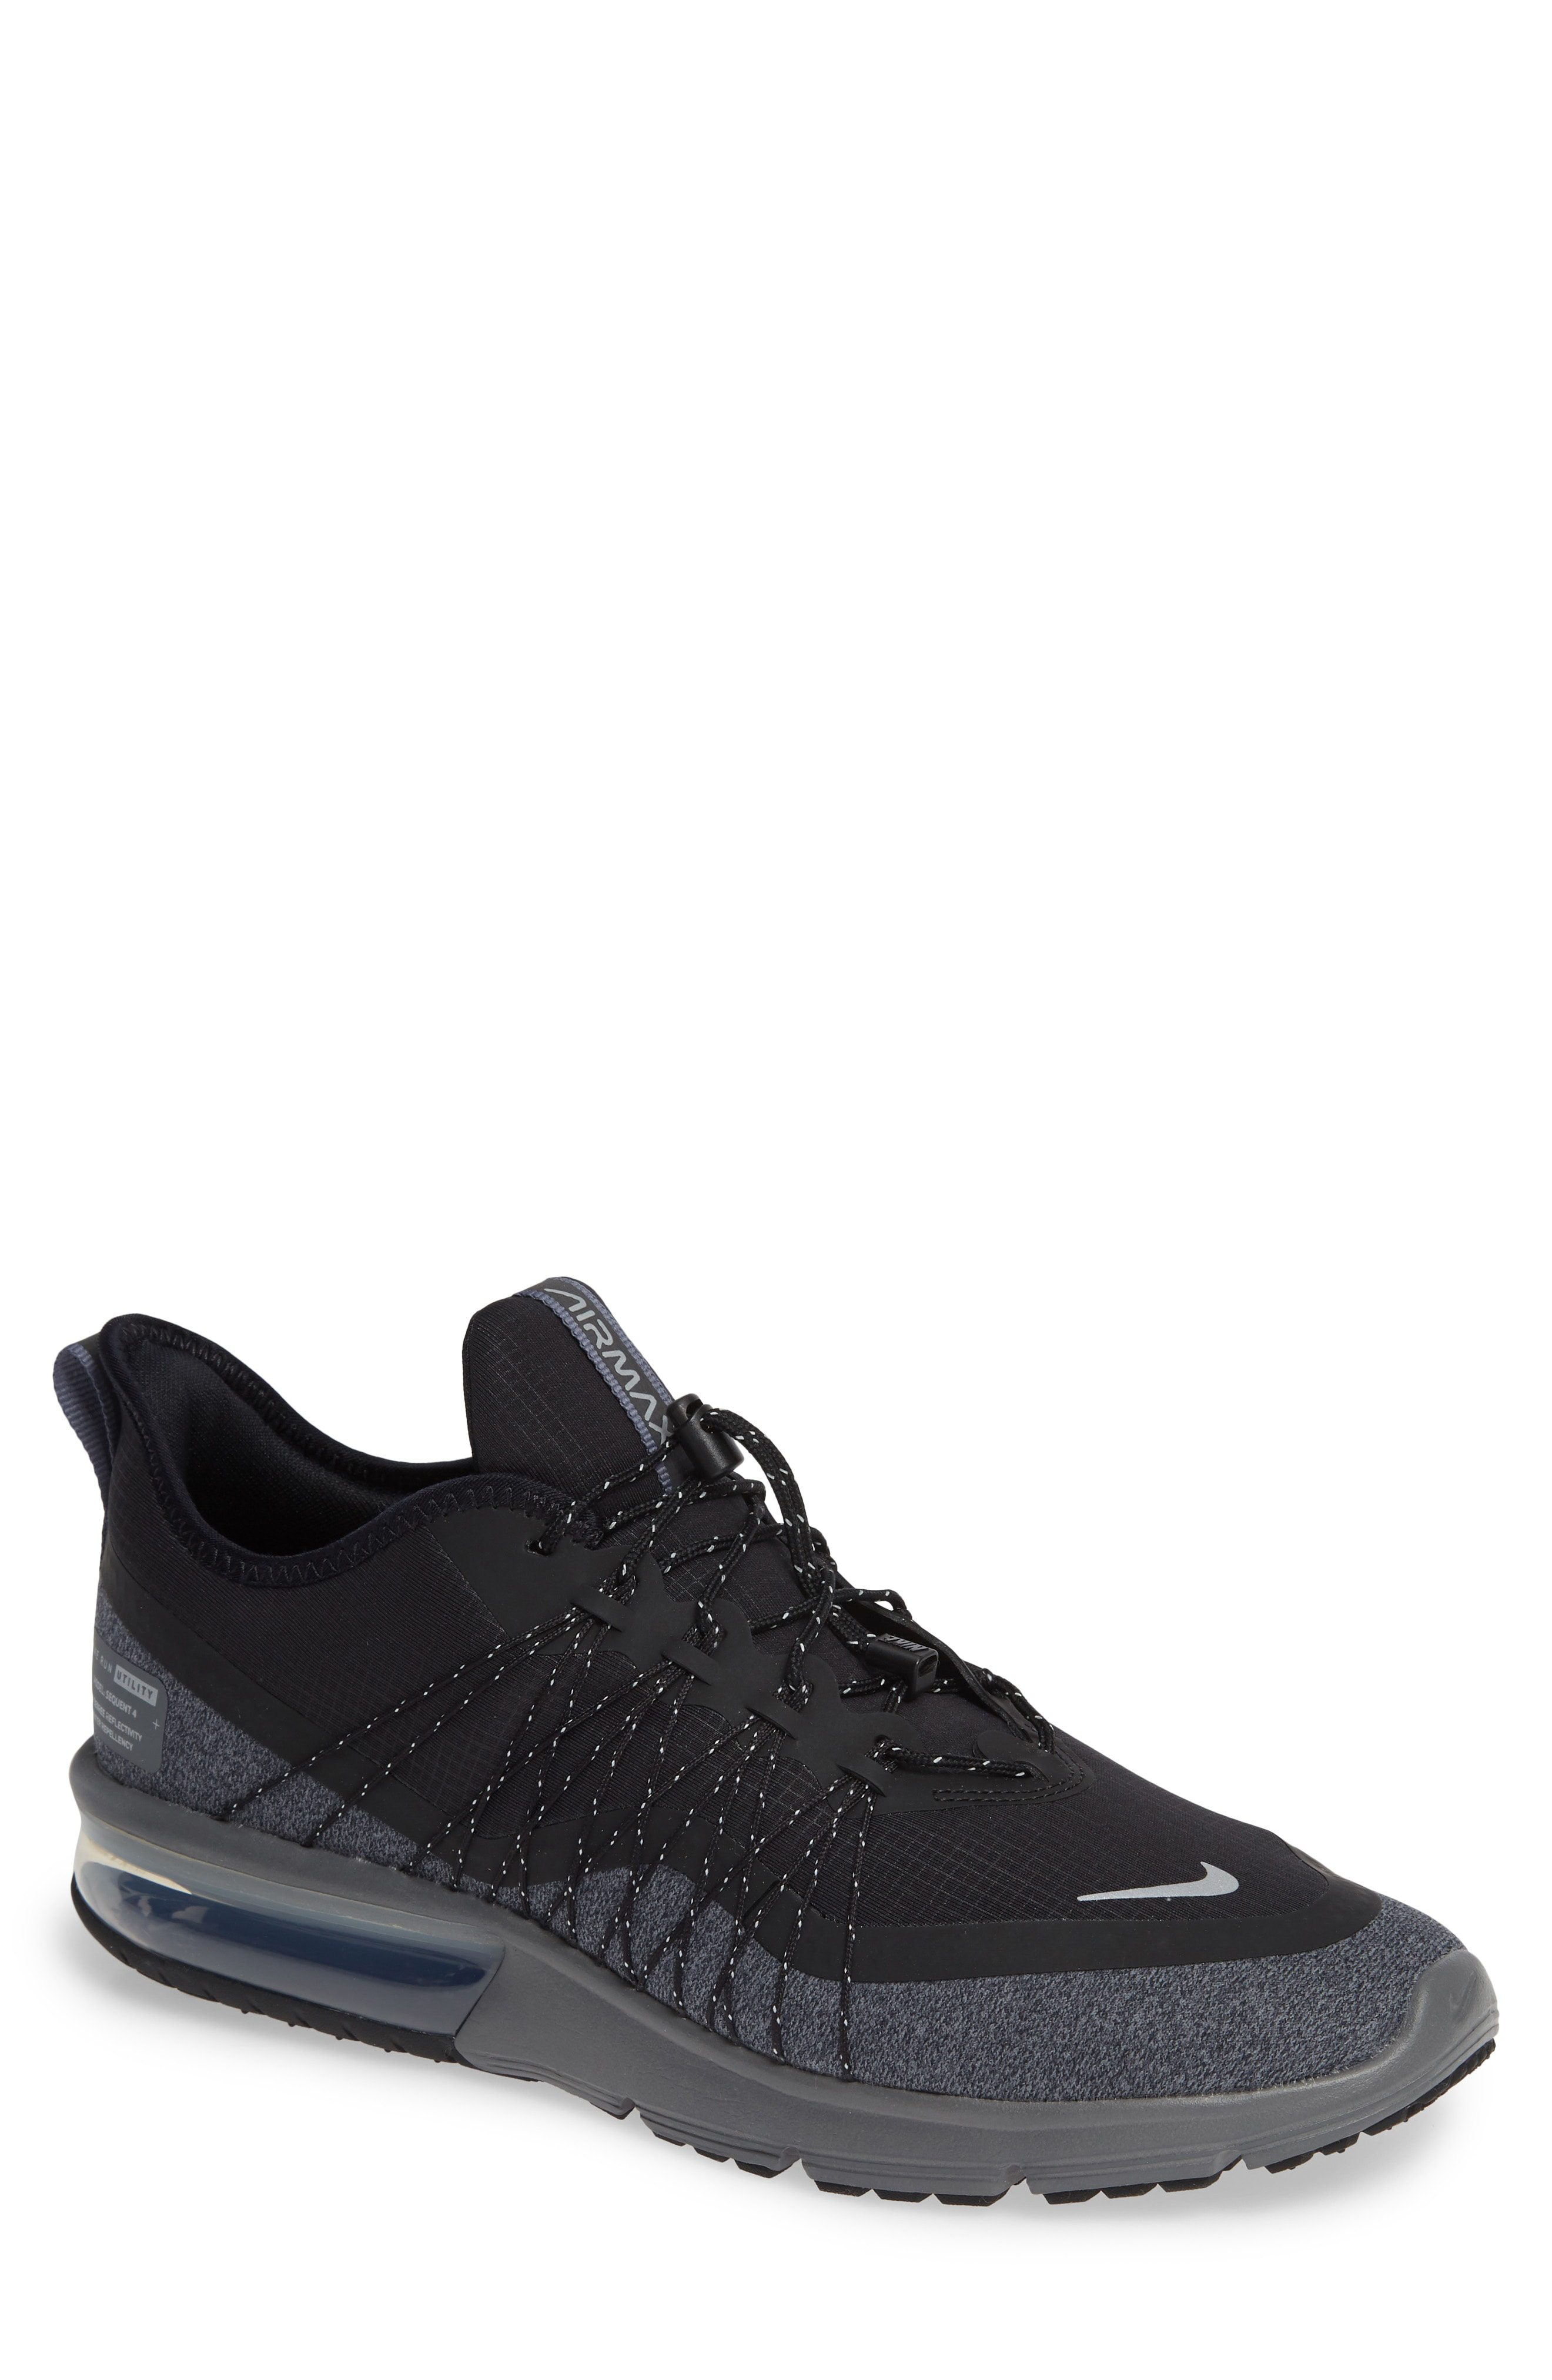 2de90c6493 Nike Men's Air Max Sequent 4 Shield Running Sneakers From Finish Line In  Black/Metallic